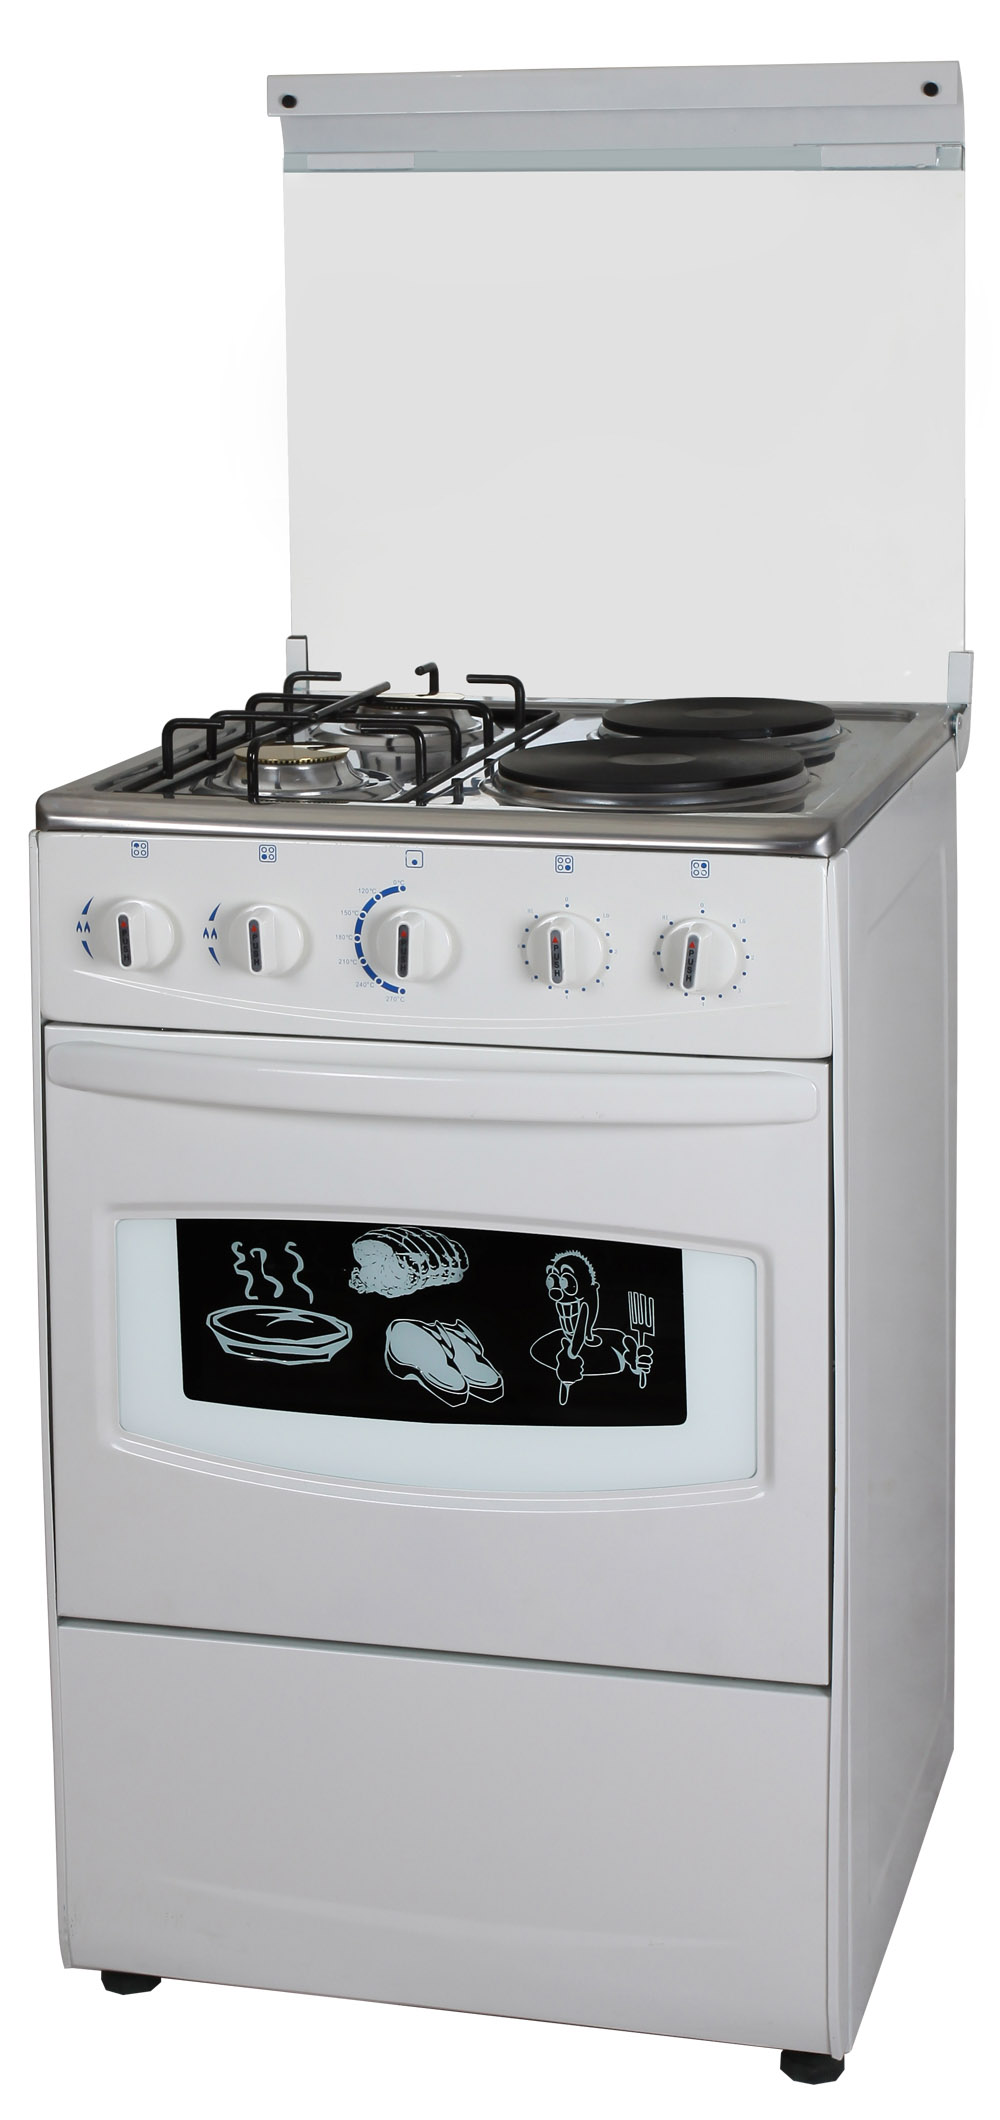 Electric 50Liter Freestanding Oven